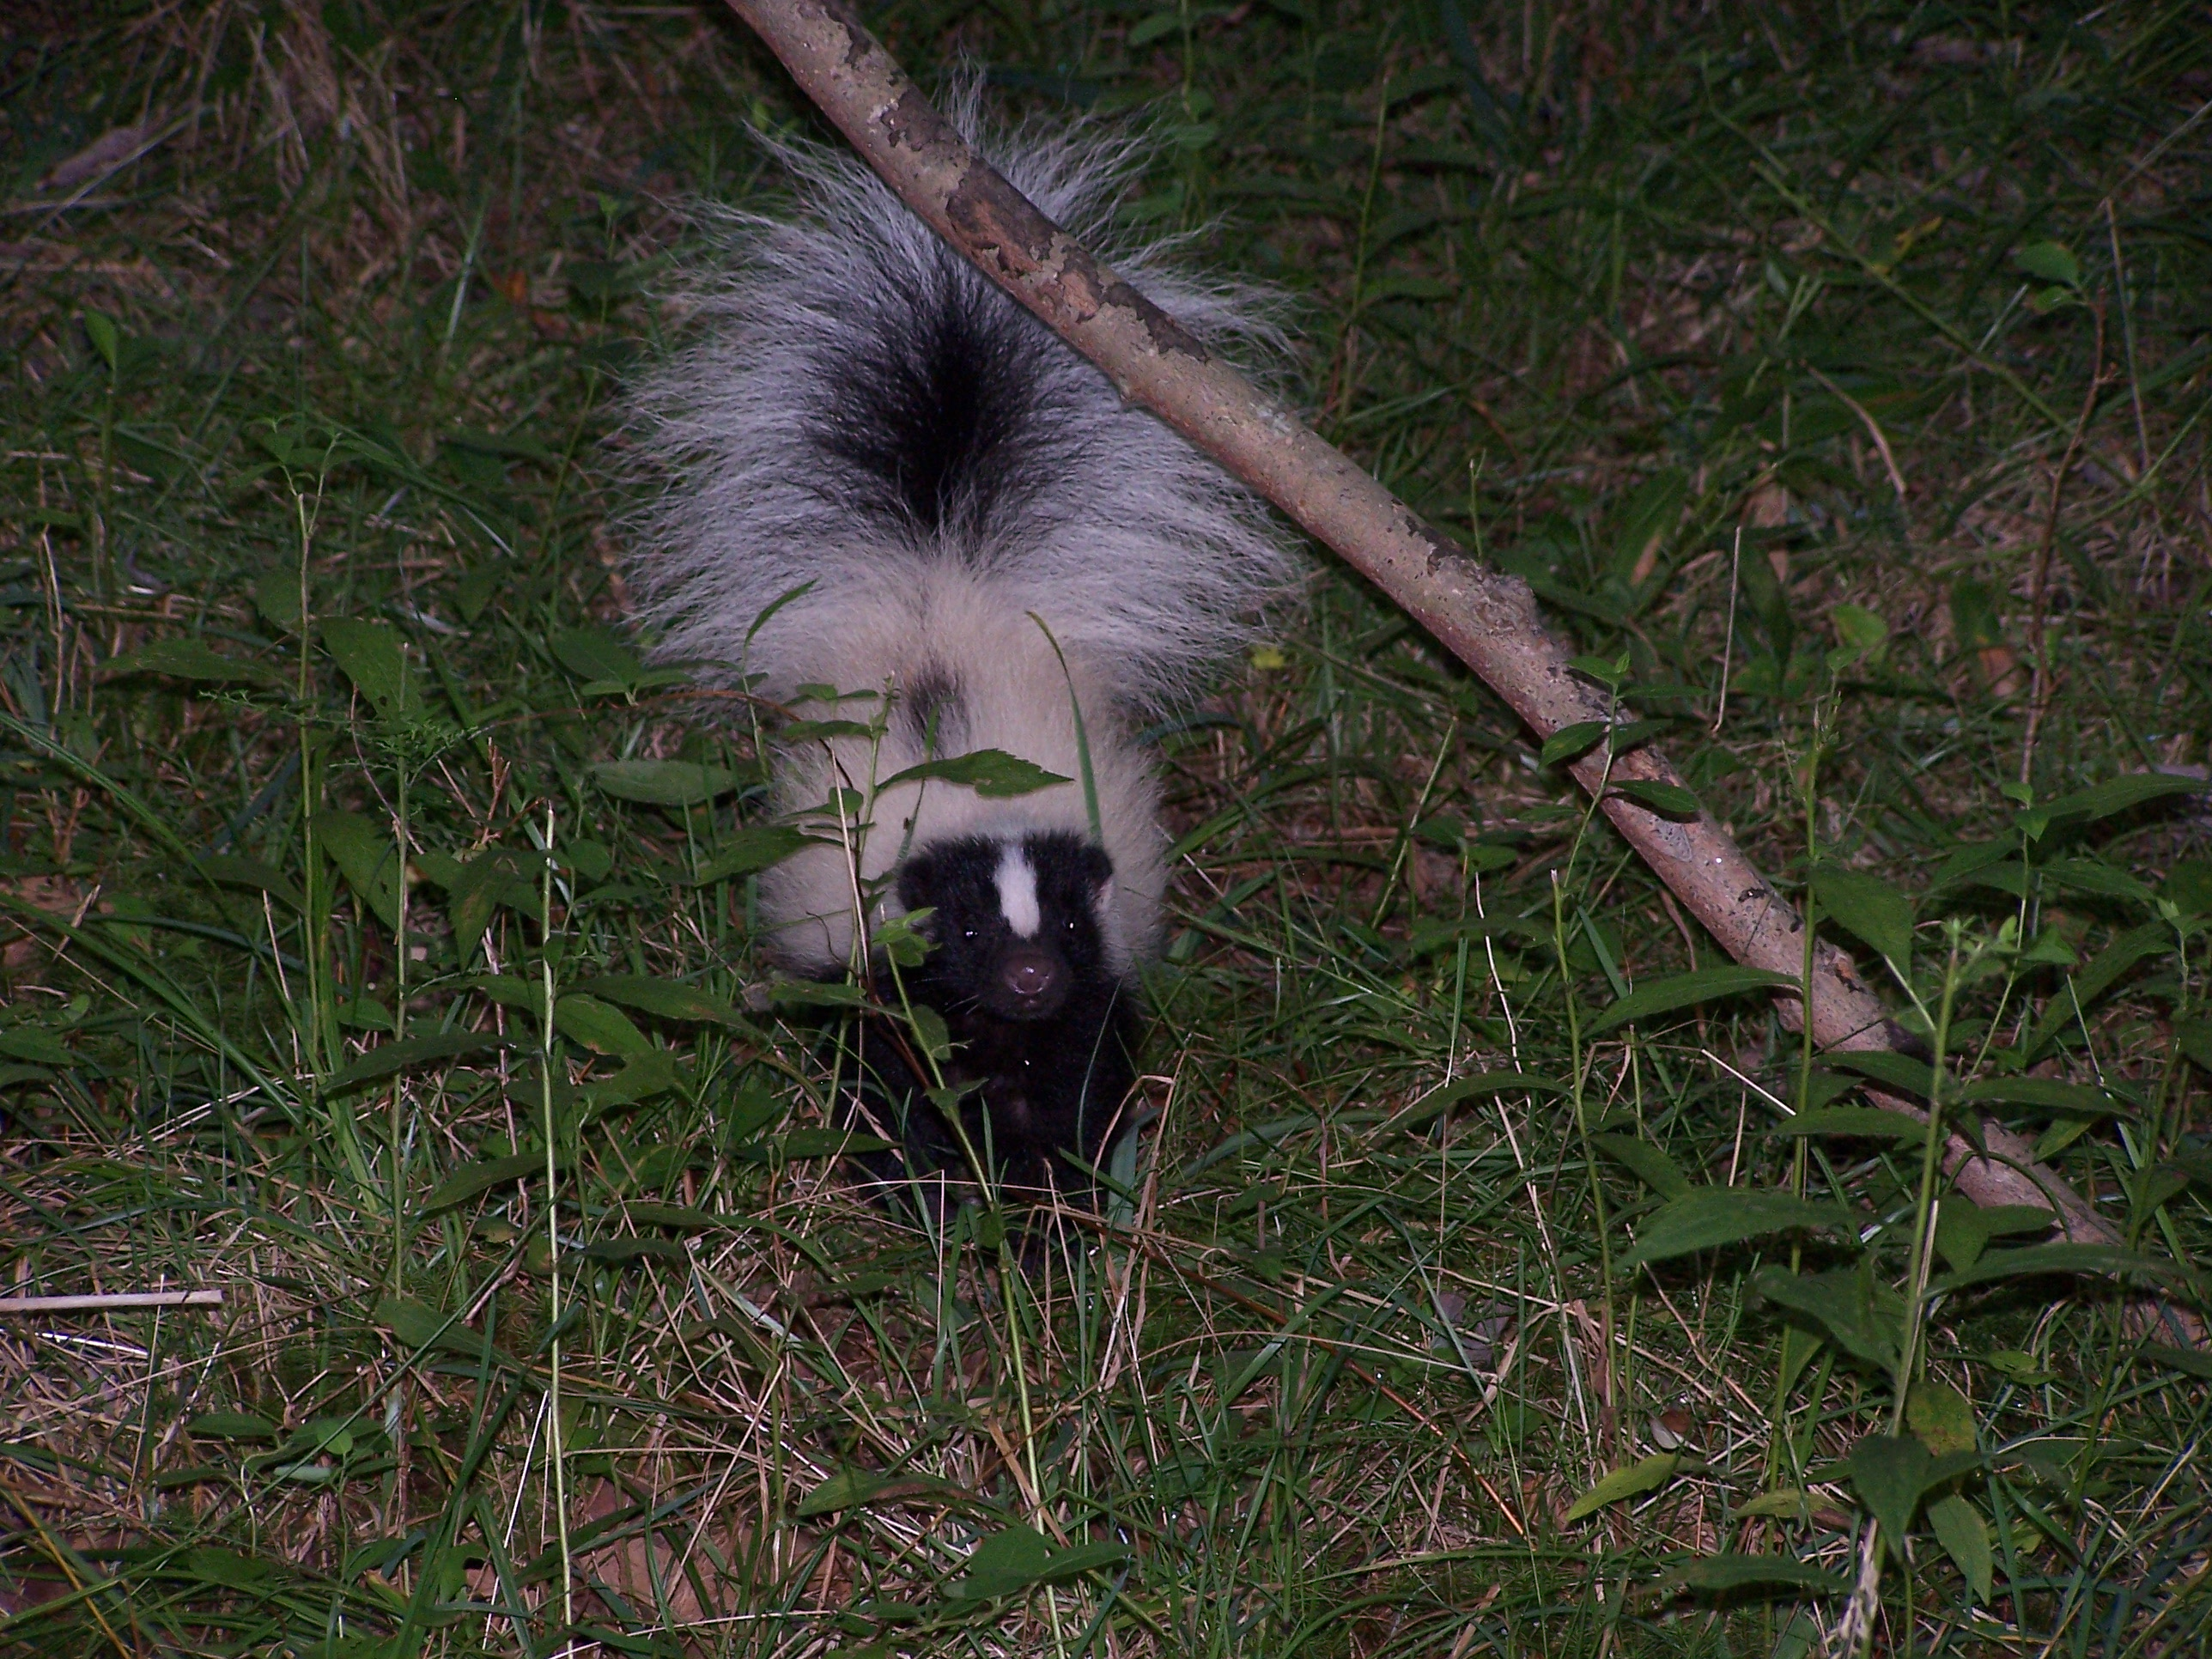 Elegant Wildlife Removal How To Get Rid Jump Skunks Rf Wildlife Control Can Skunks Climb Into Attics Can Skunks Climb houzz 01 Can Skunks Climb